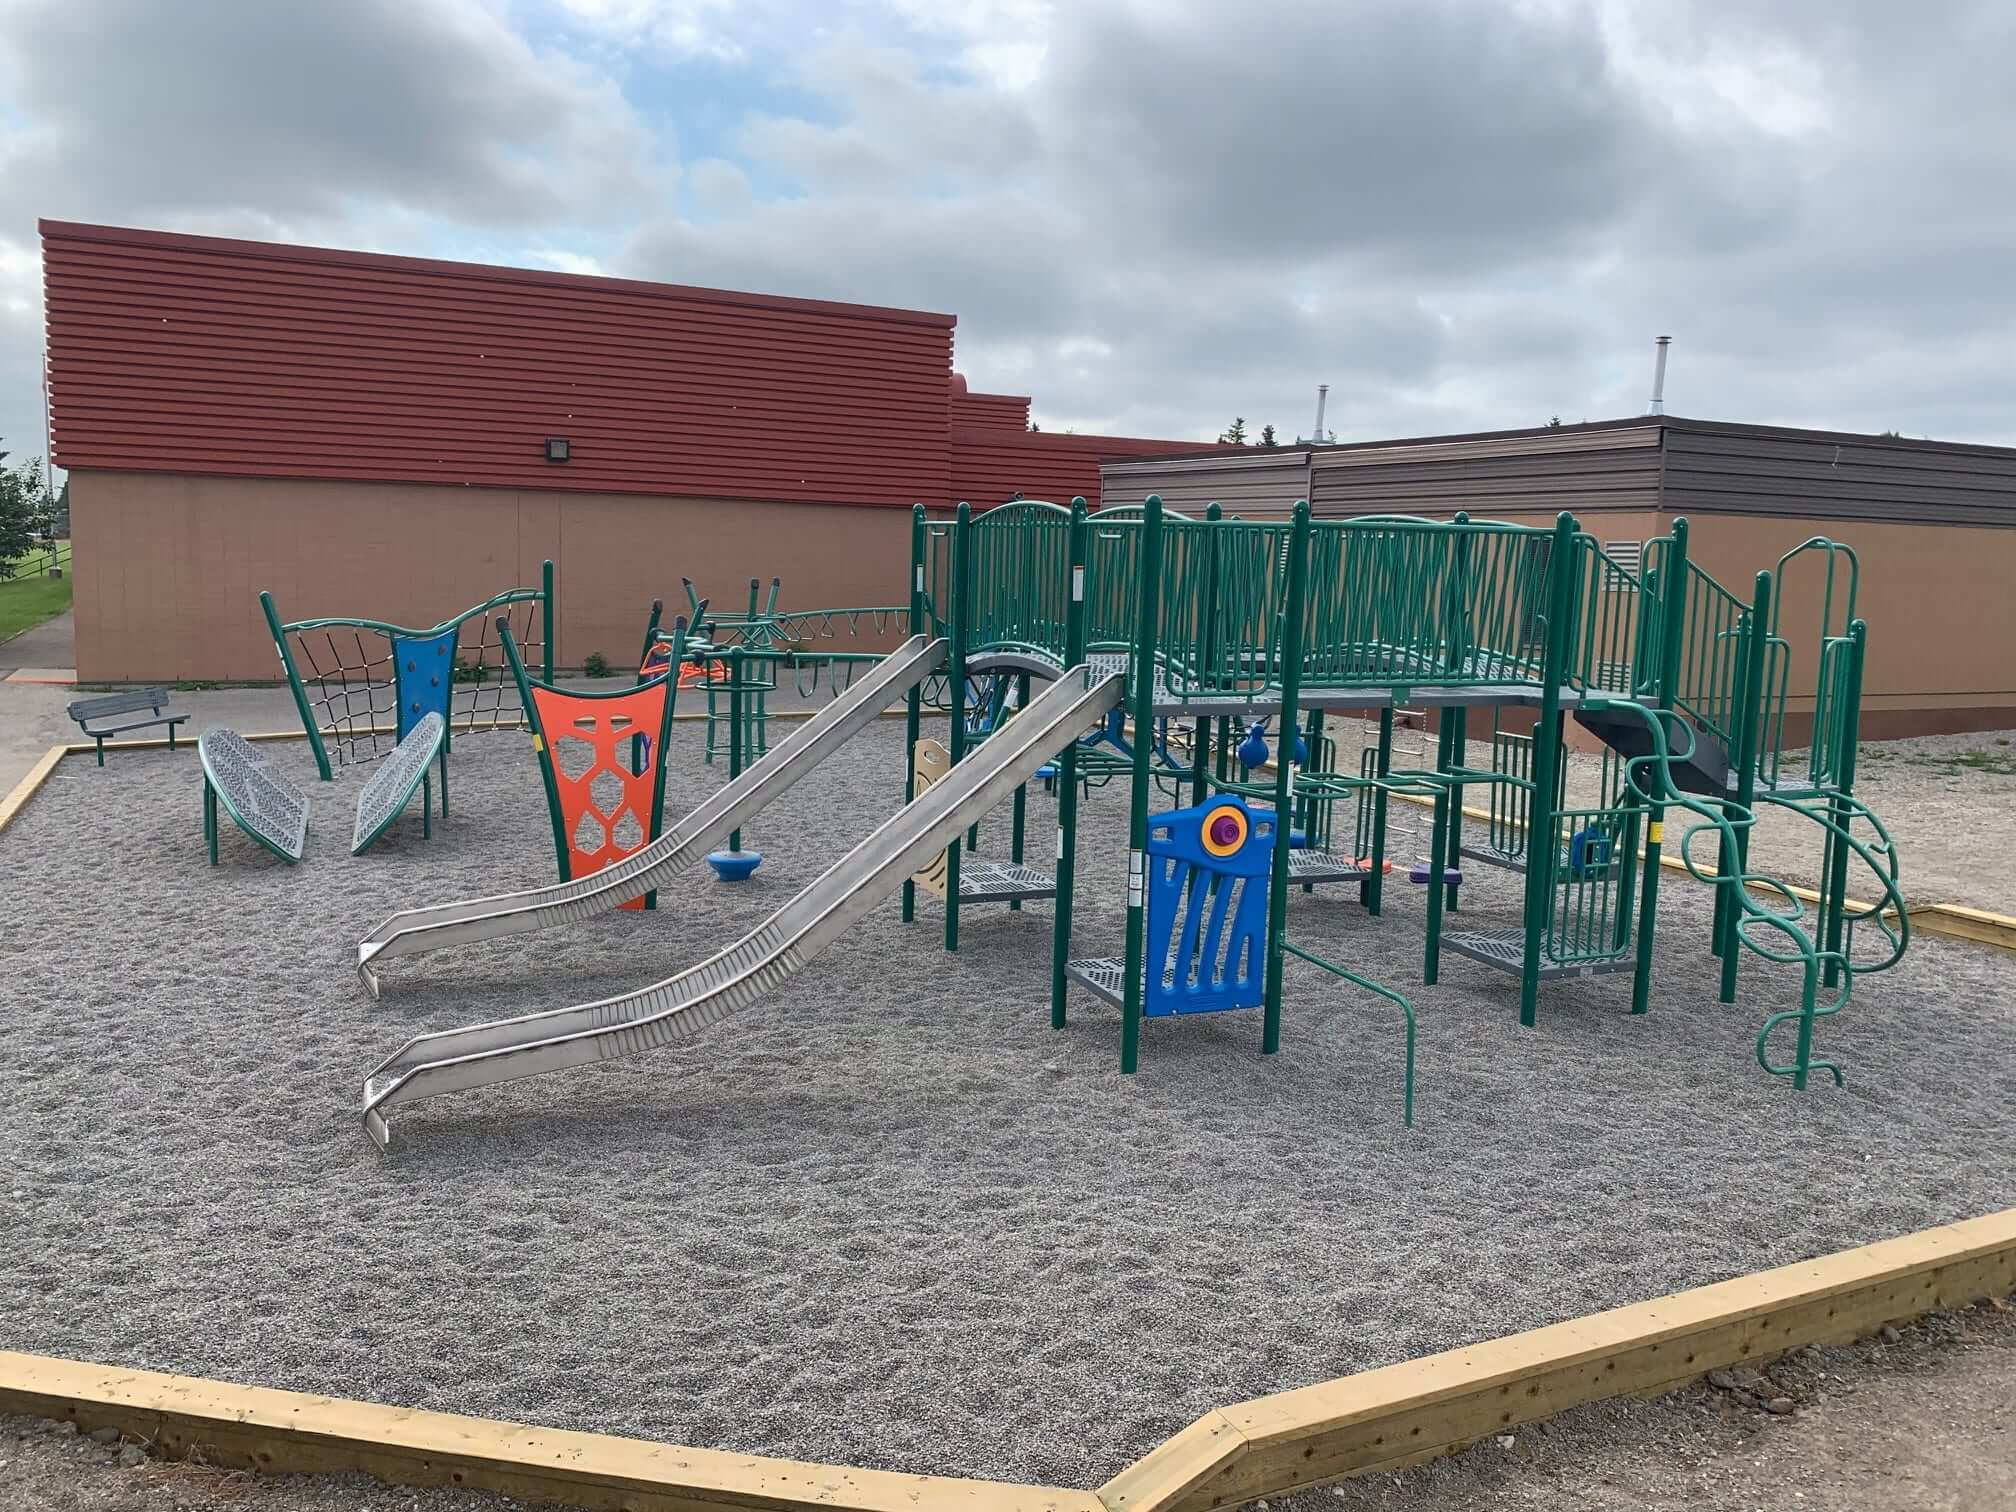 Top Areas to Check to Ensure A Safe, Well-Maintained Playground